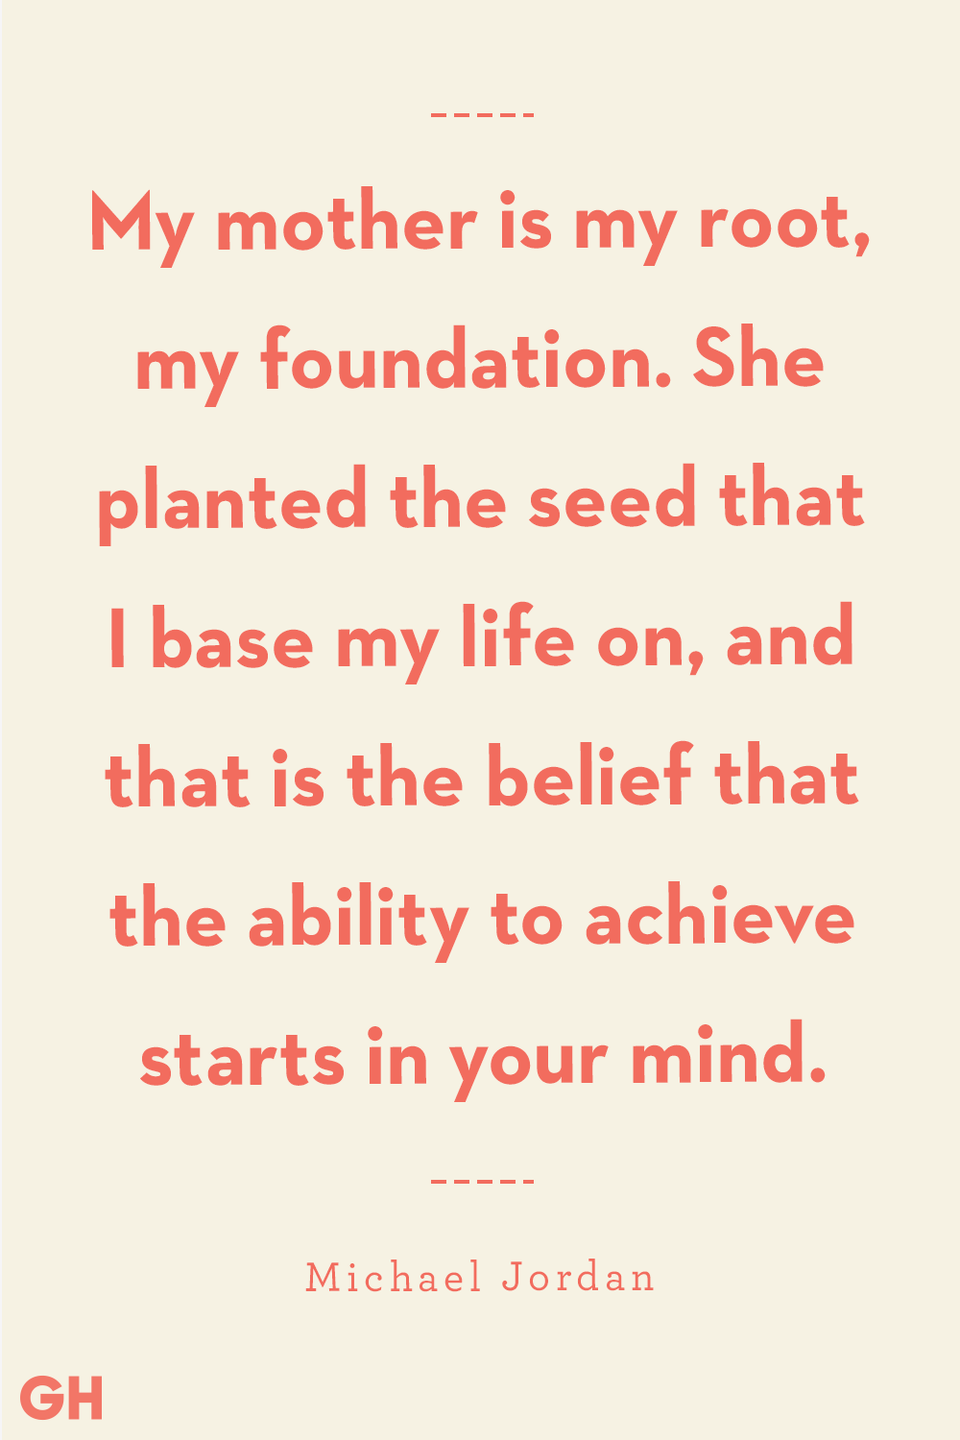 <p>My mother is my root, my foundation. She planted the seed that I base my life on, and that is the belief that the ability to achieve starts in your mind.</p>